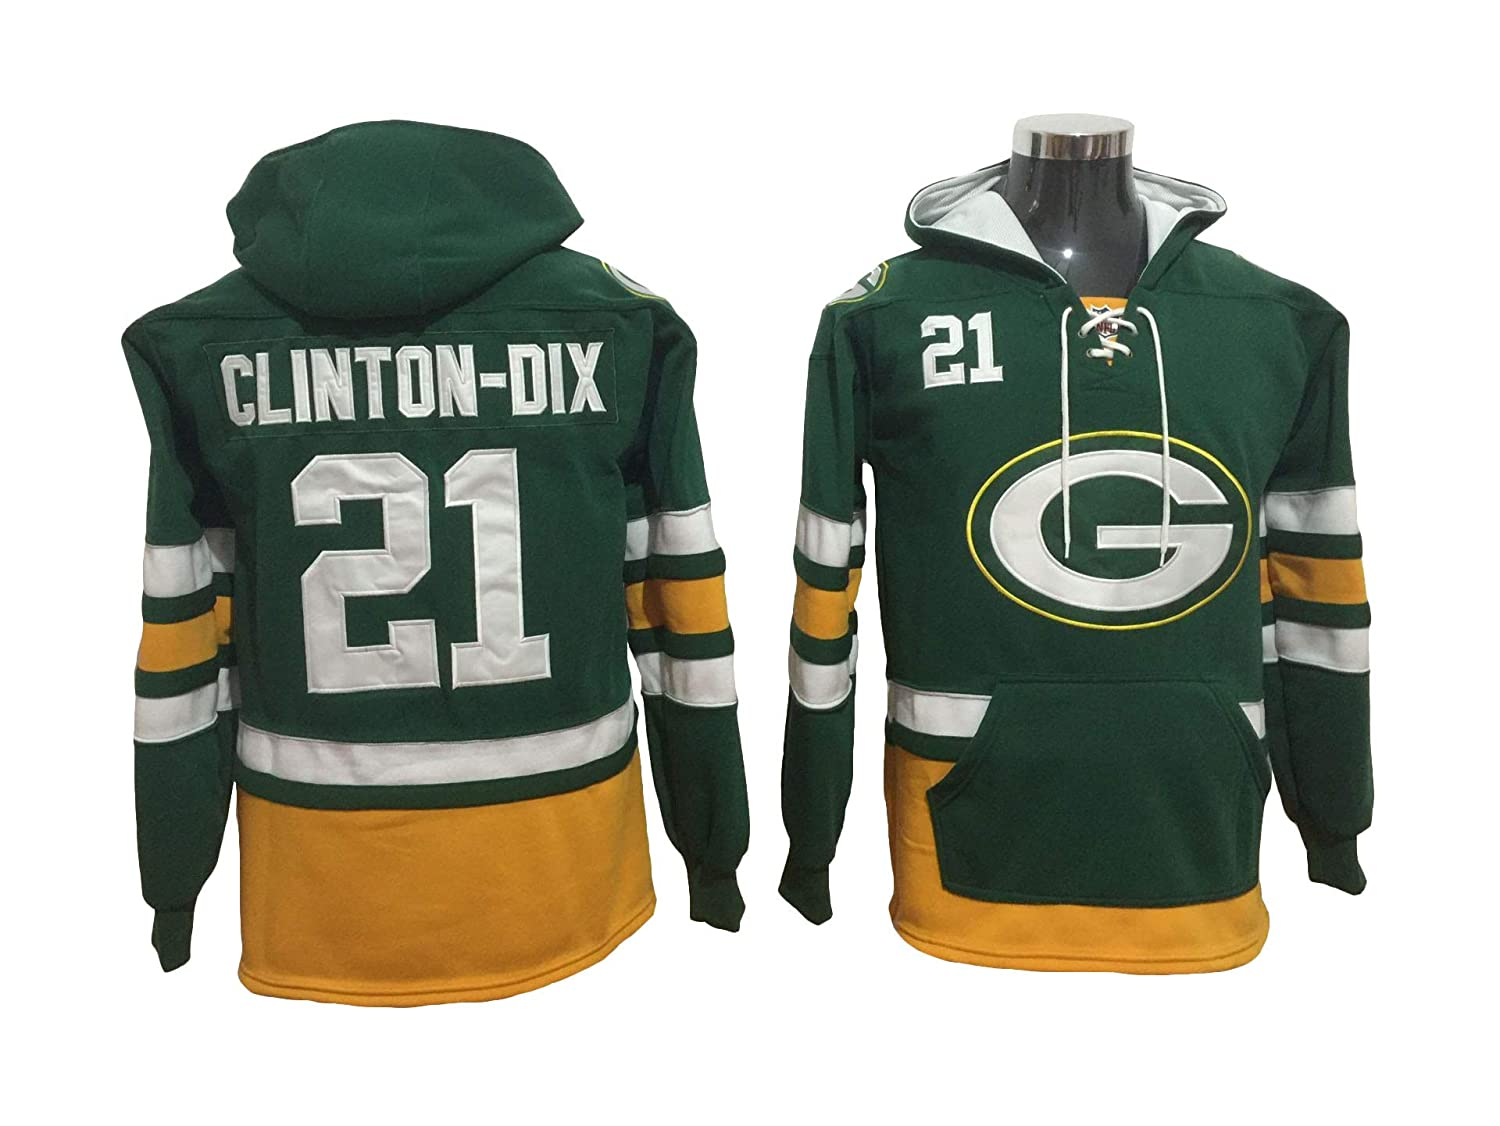 low priced de562 fc84d Fan Apparel Clinton Dix Packers Football Hoodie Jersey at ...